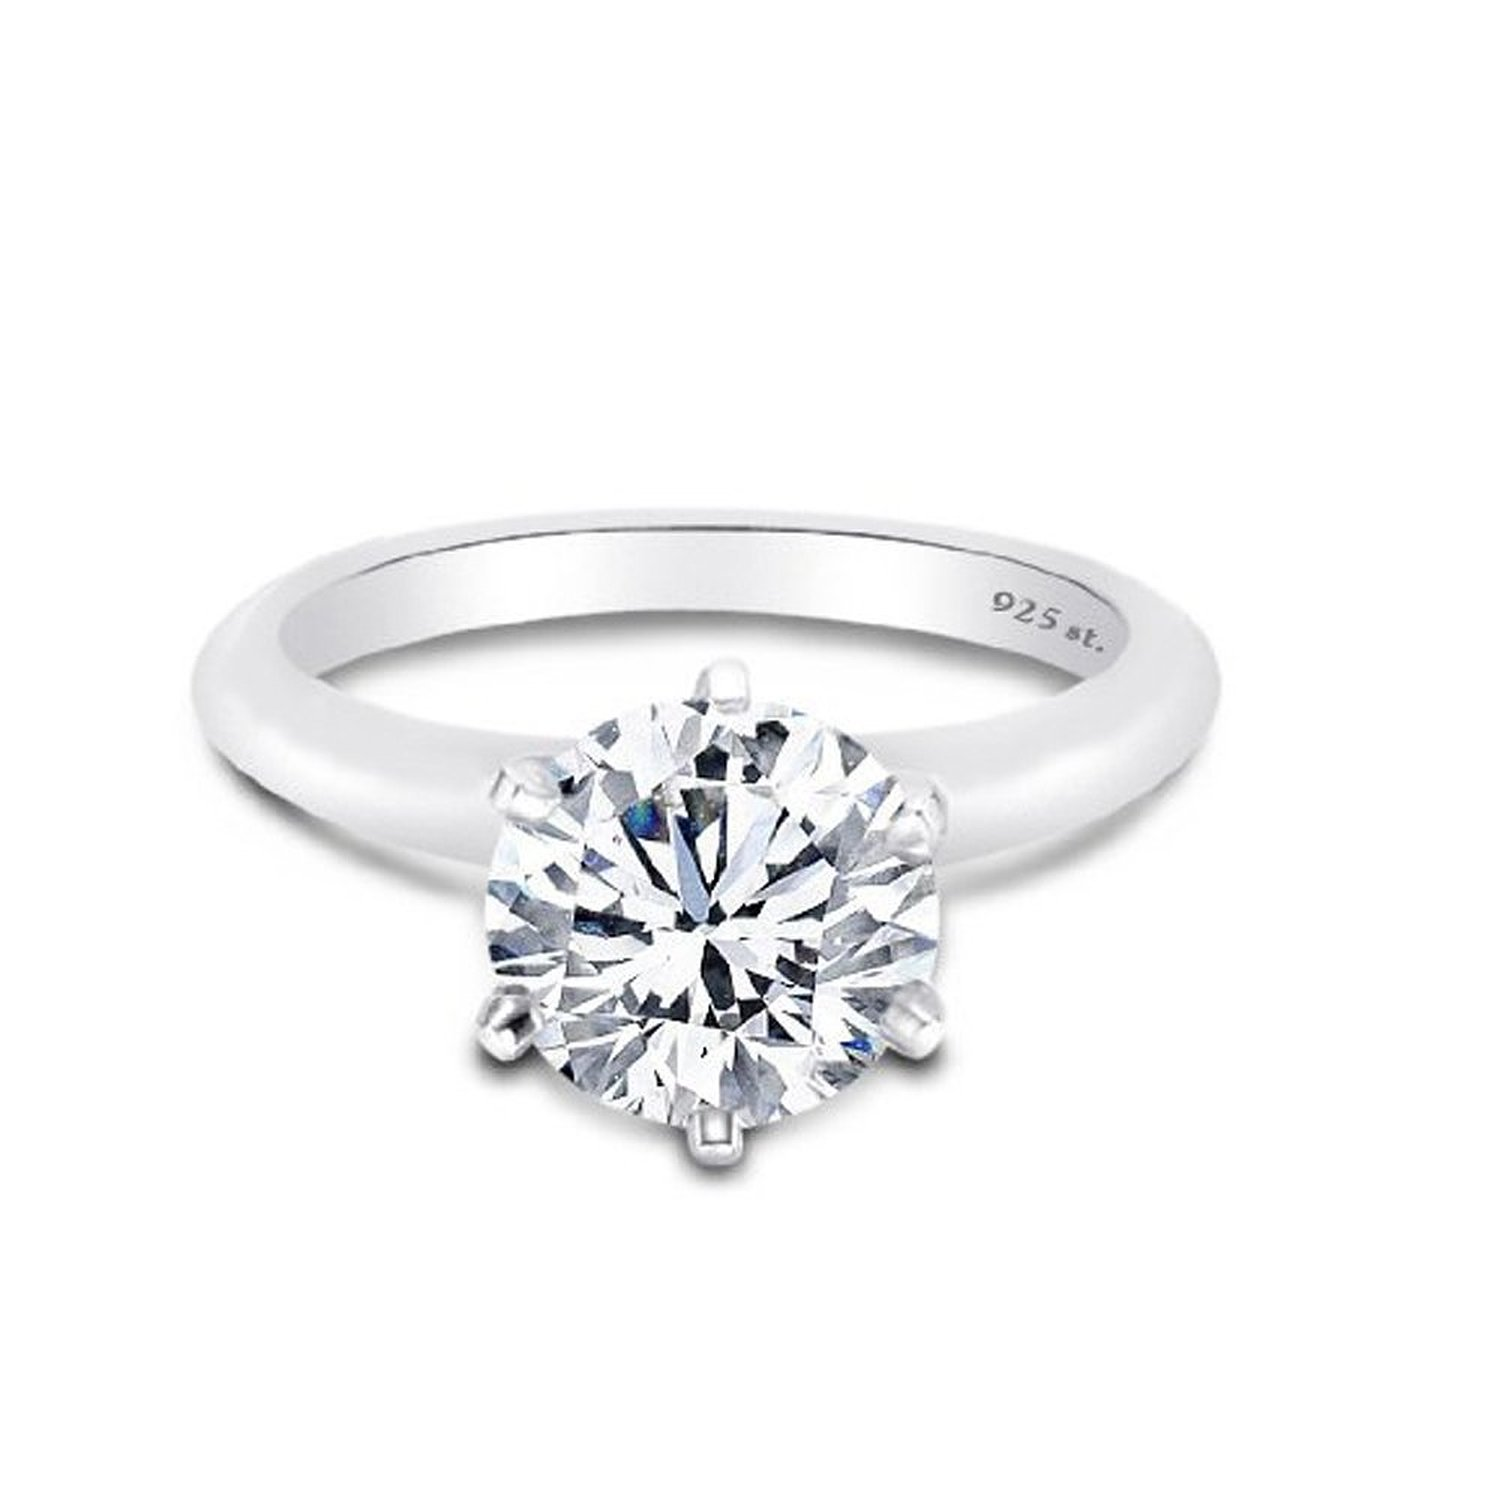 925 Sterling Silver Solitaire Ring 6 Prong Setting Designer 2 Carat Cubic Zirconia Rings 8